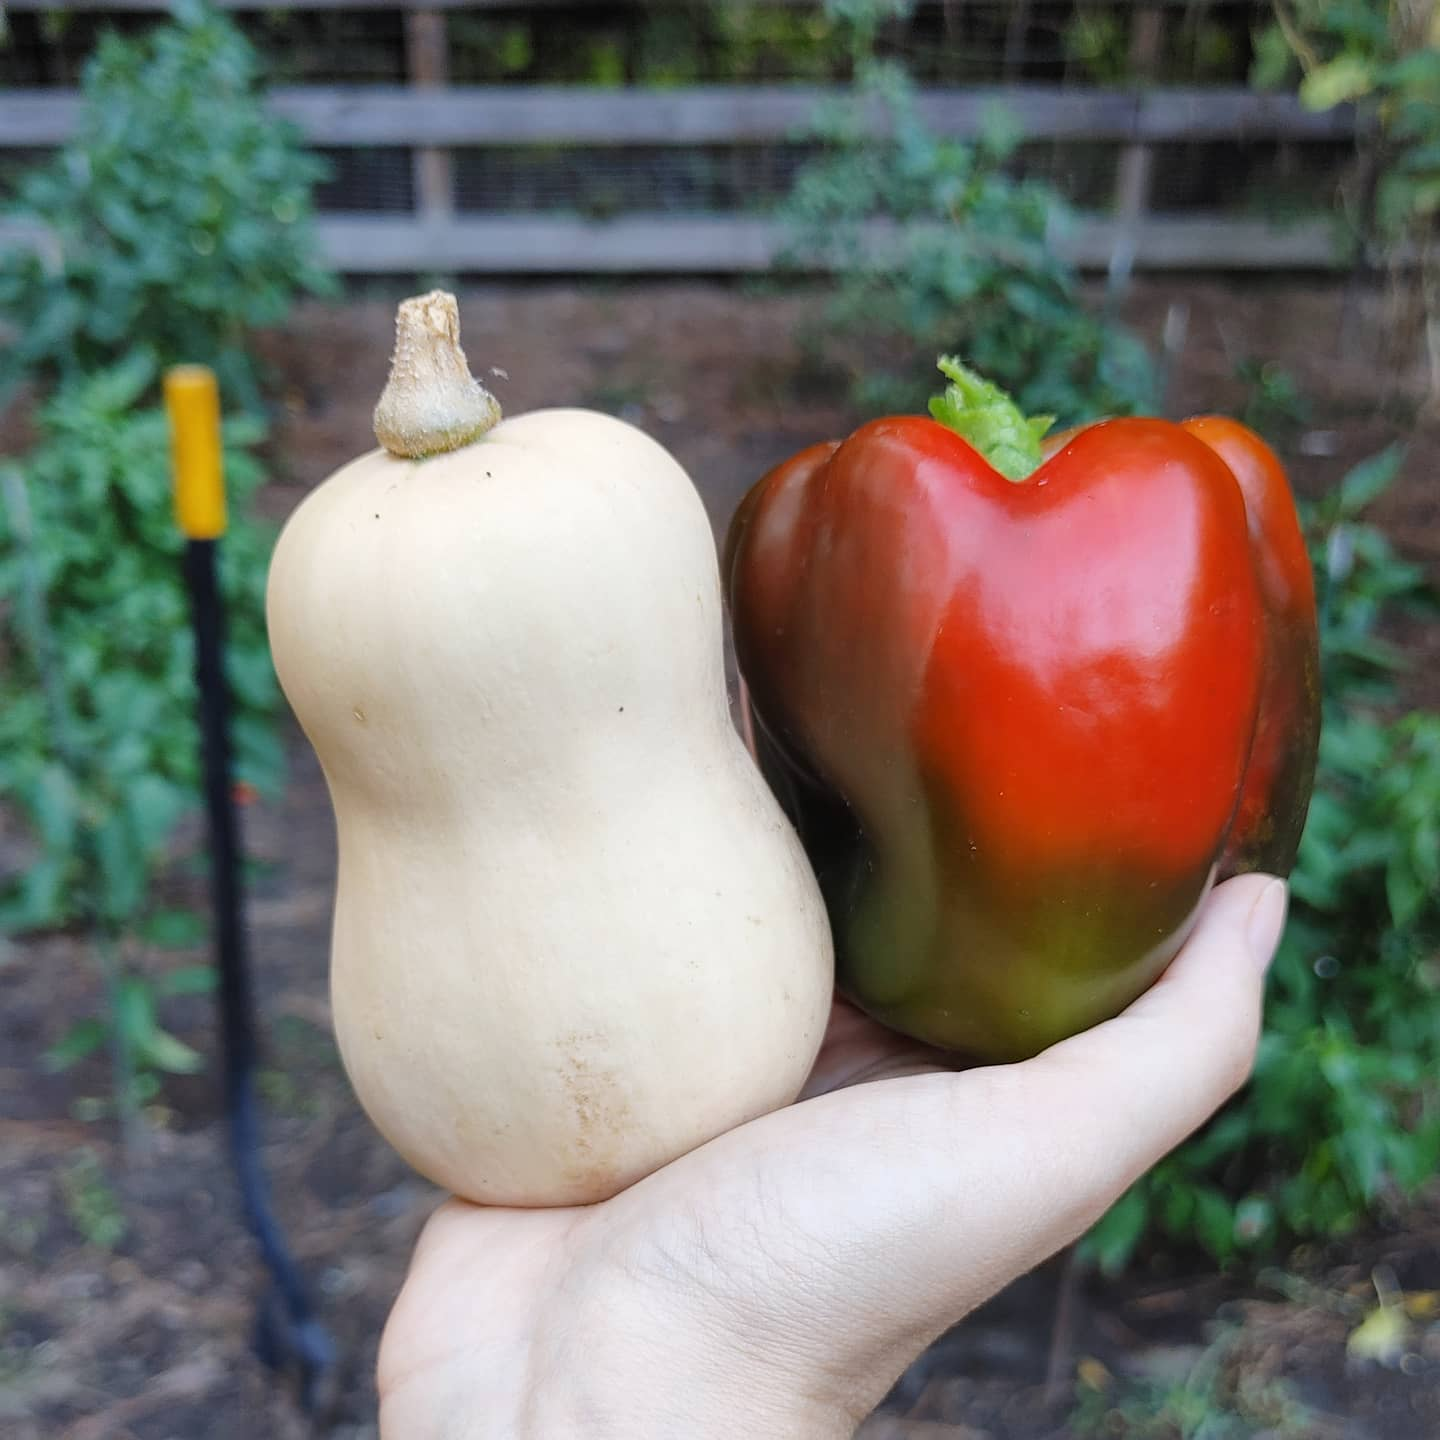 One is big and one is tiny. One volunteered and one was cultivated. I love them equally. We are all doing our best.